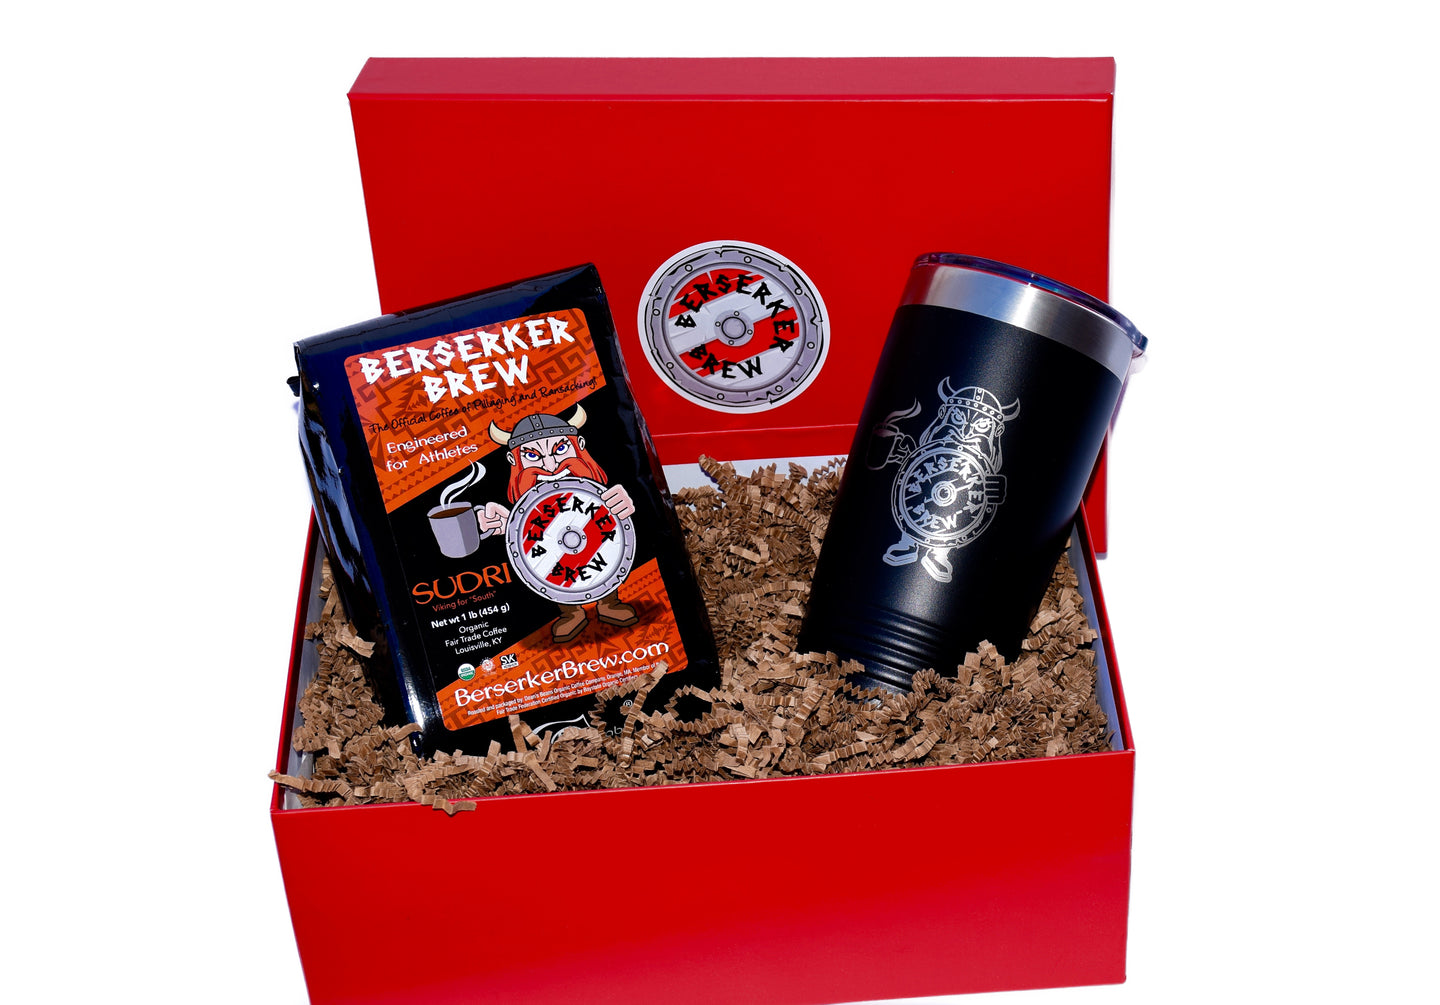 Traveler's Edition Gift Box - BerserkerBrew.com